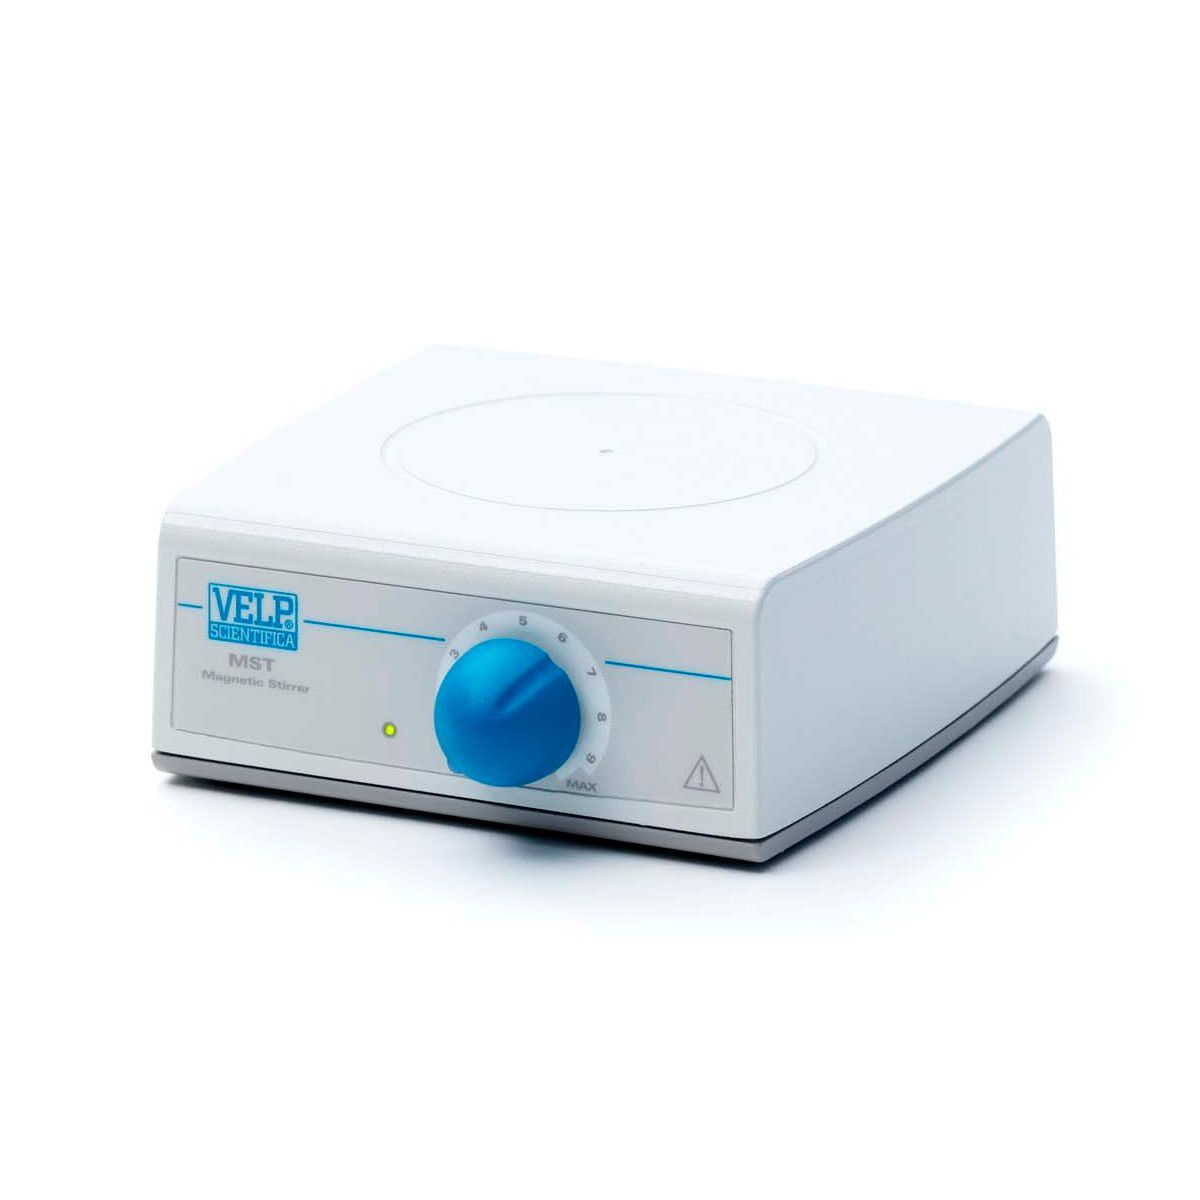 VELP Scientifica- MST Digital Magnetic Stirrer